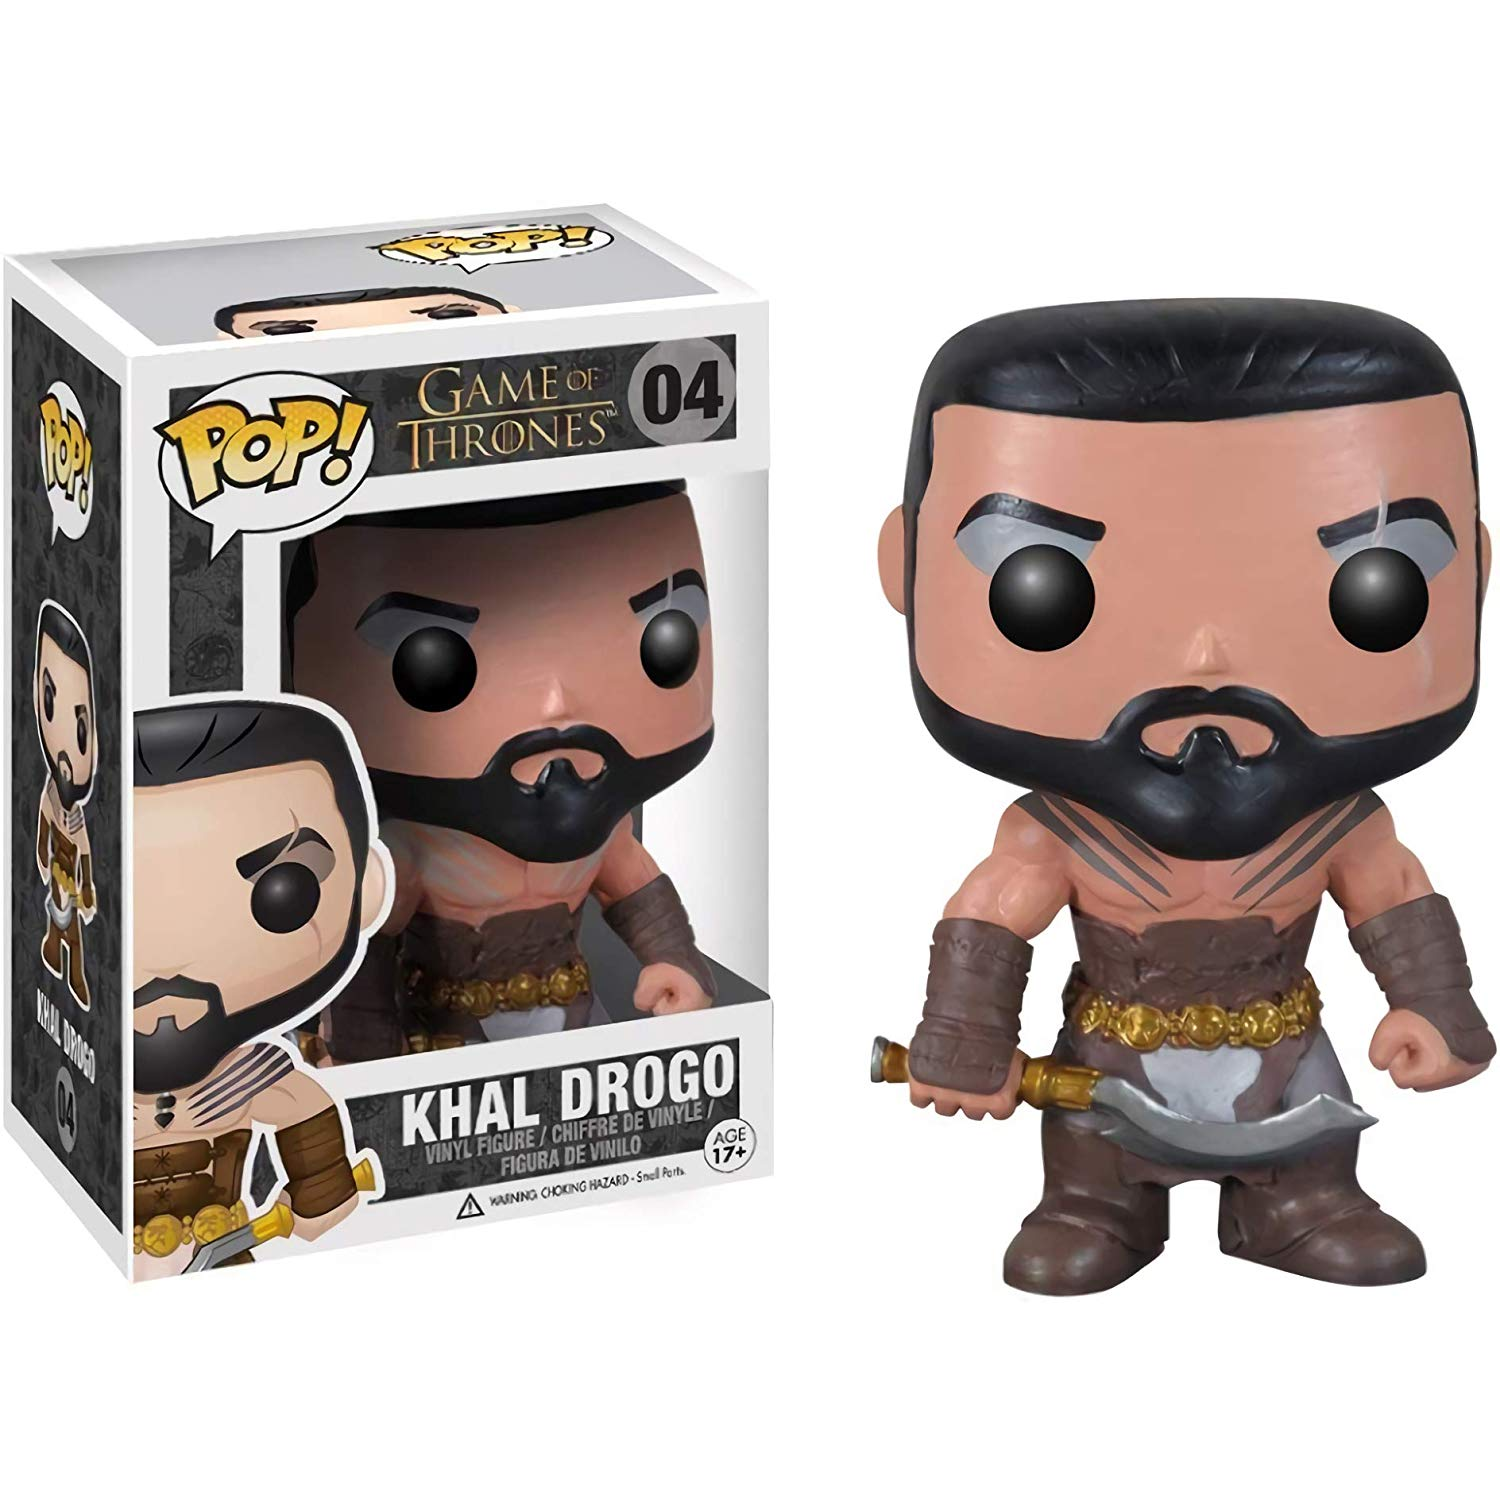 Official Funko pop Game of Thrones - Khal Drogo Vinyl Action Figure Collectible Model Toy with Original BoxOfficial Funko pop Game of Thrones - Khal Drogo Vinyl Action Figure Collectible Model Toy with Original Box